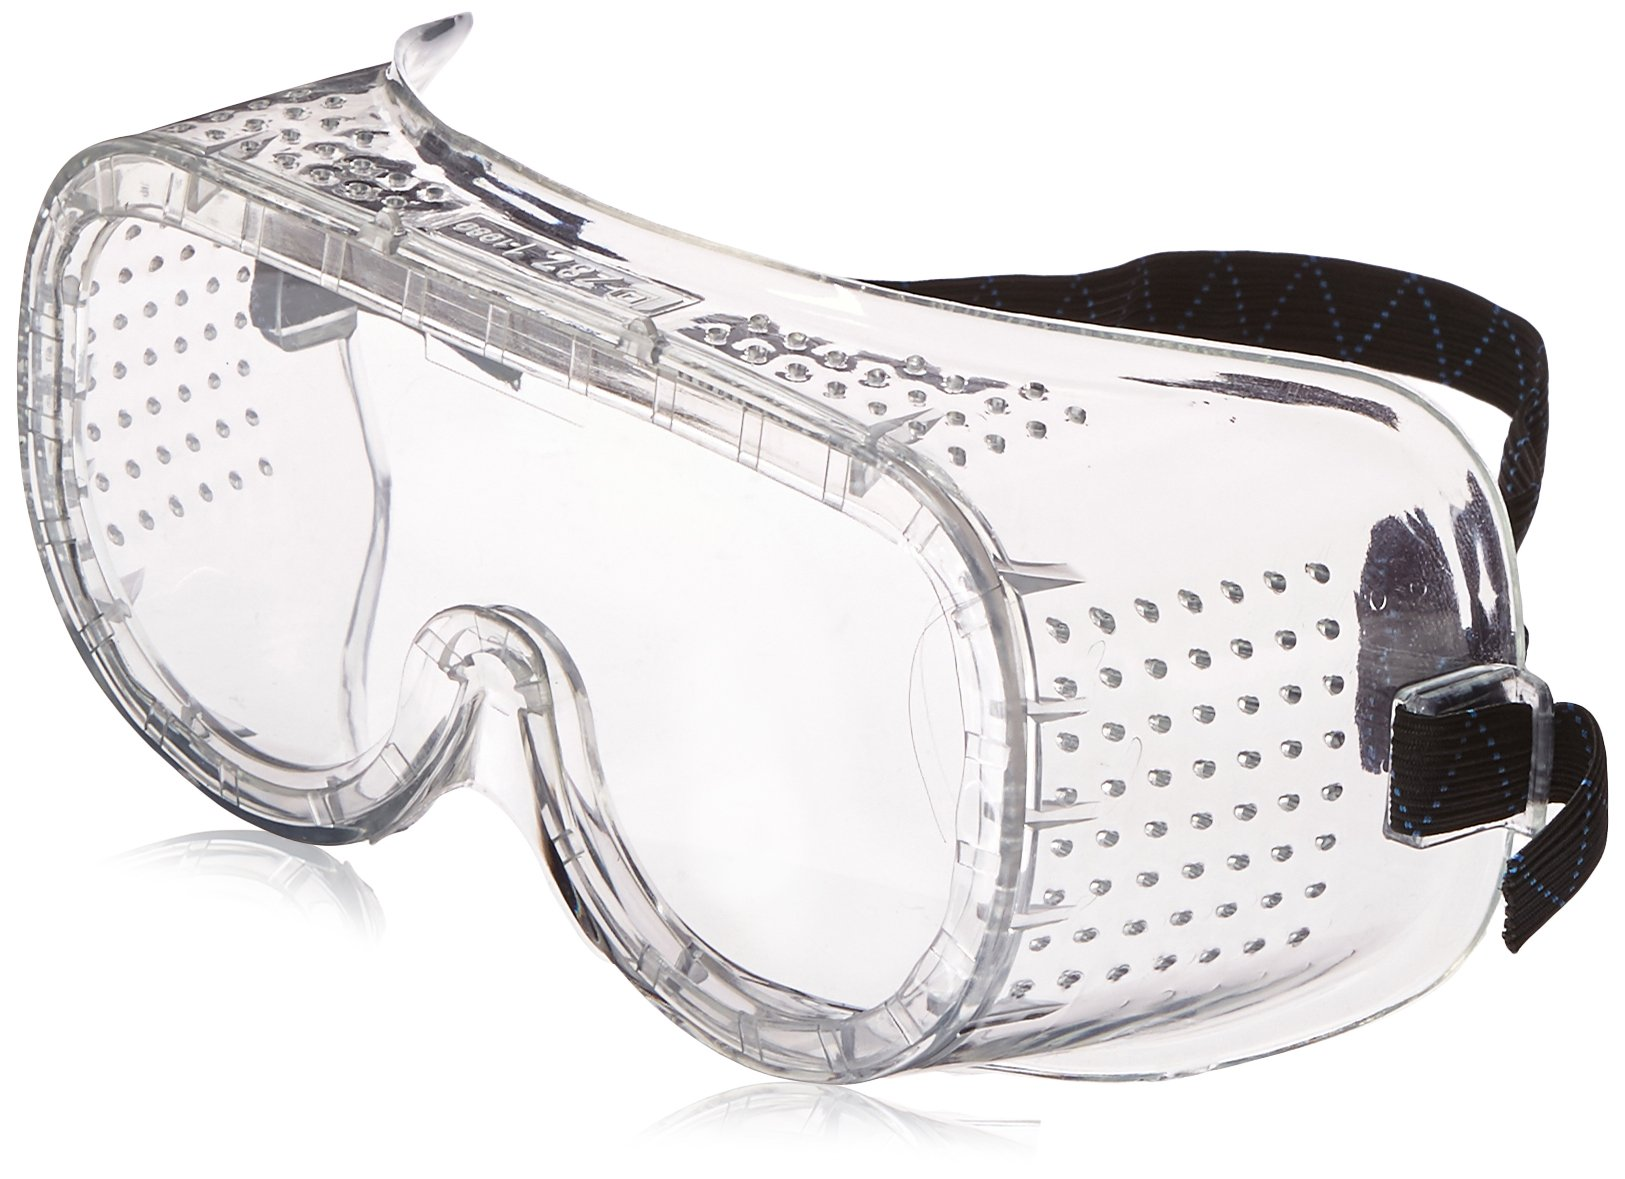 Neiko 53874A Protective Anti-Fog Safety Goggles with Wide-Vision, Extra Soft, Adjustable & Lightweight by Neiko (Image #1)